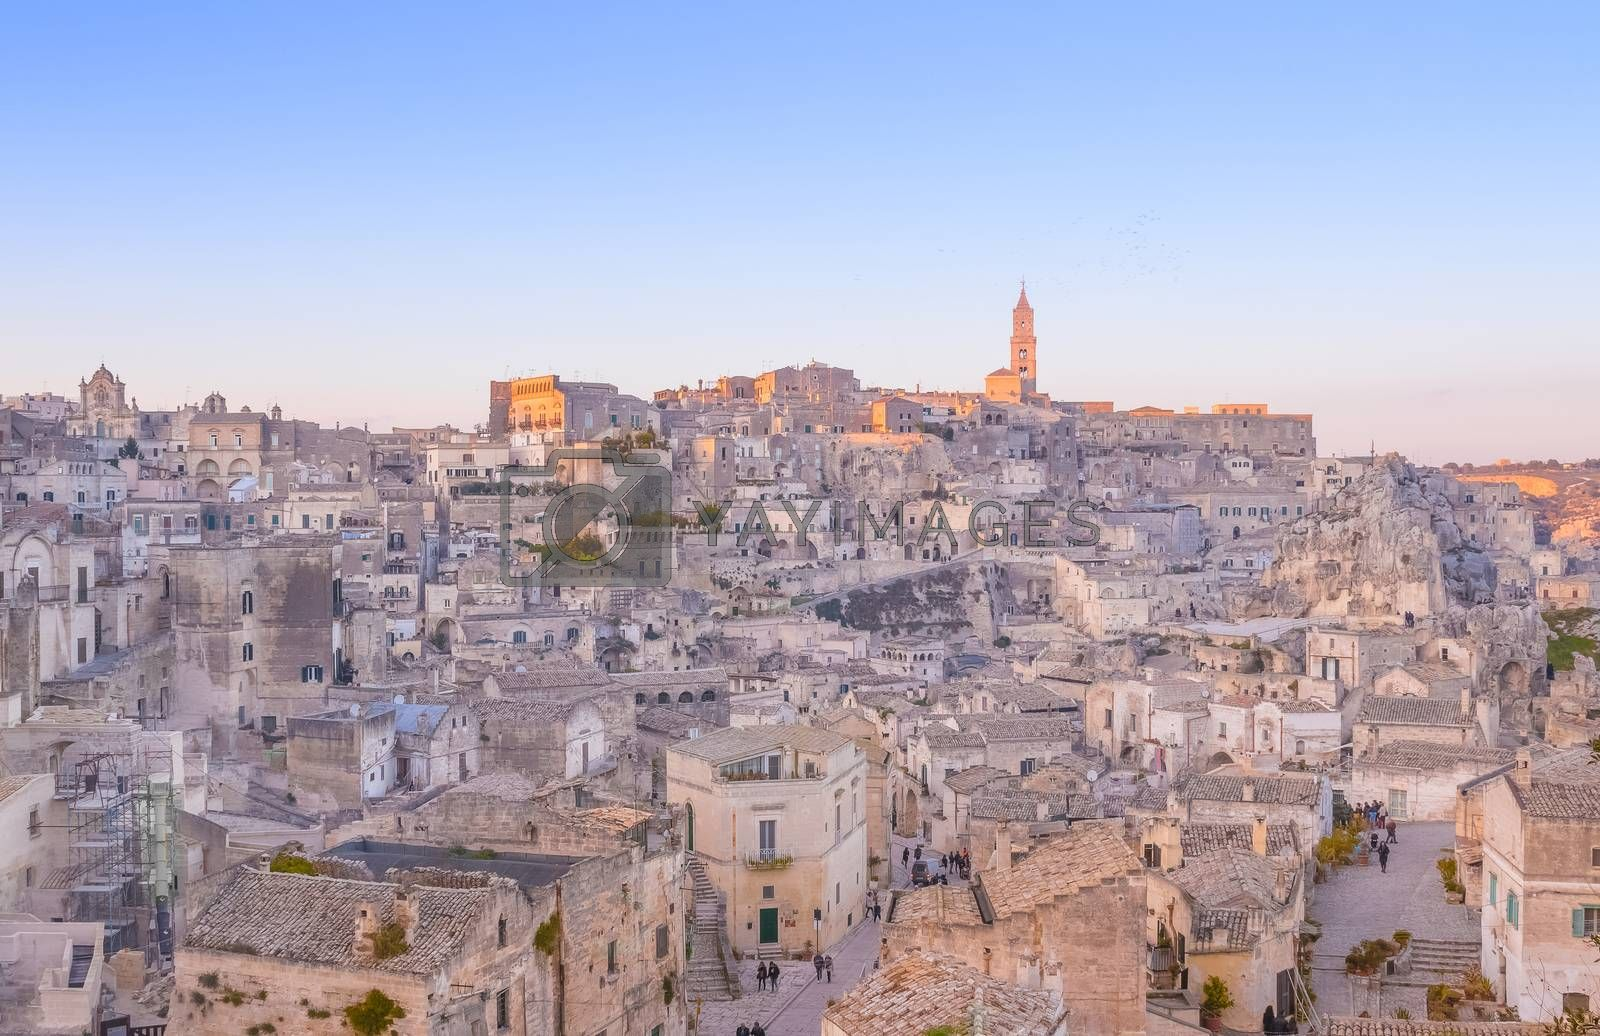 panoramic view of typical stones and church of Matera and the Madonna de Idris under begin sunset sky. Basilicata, Italy